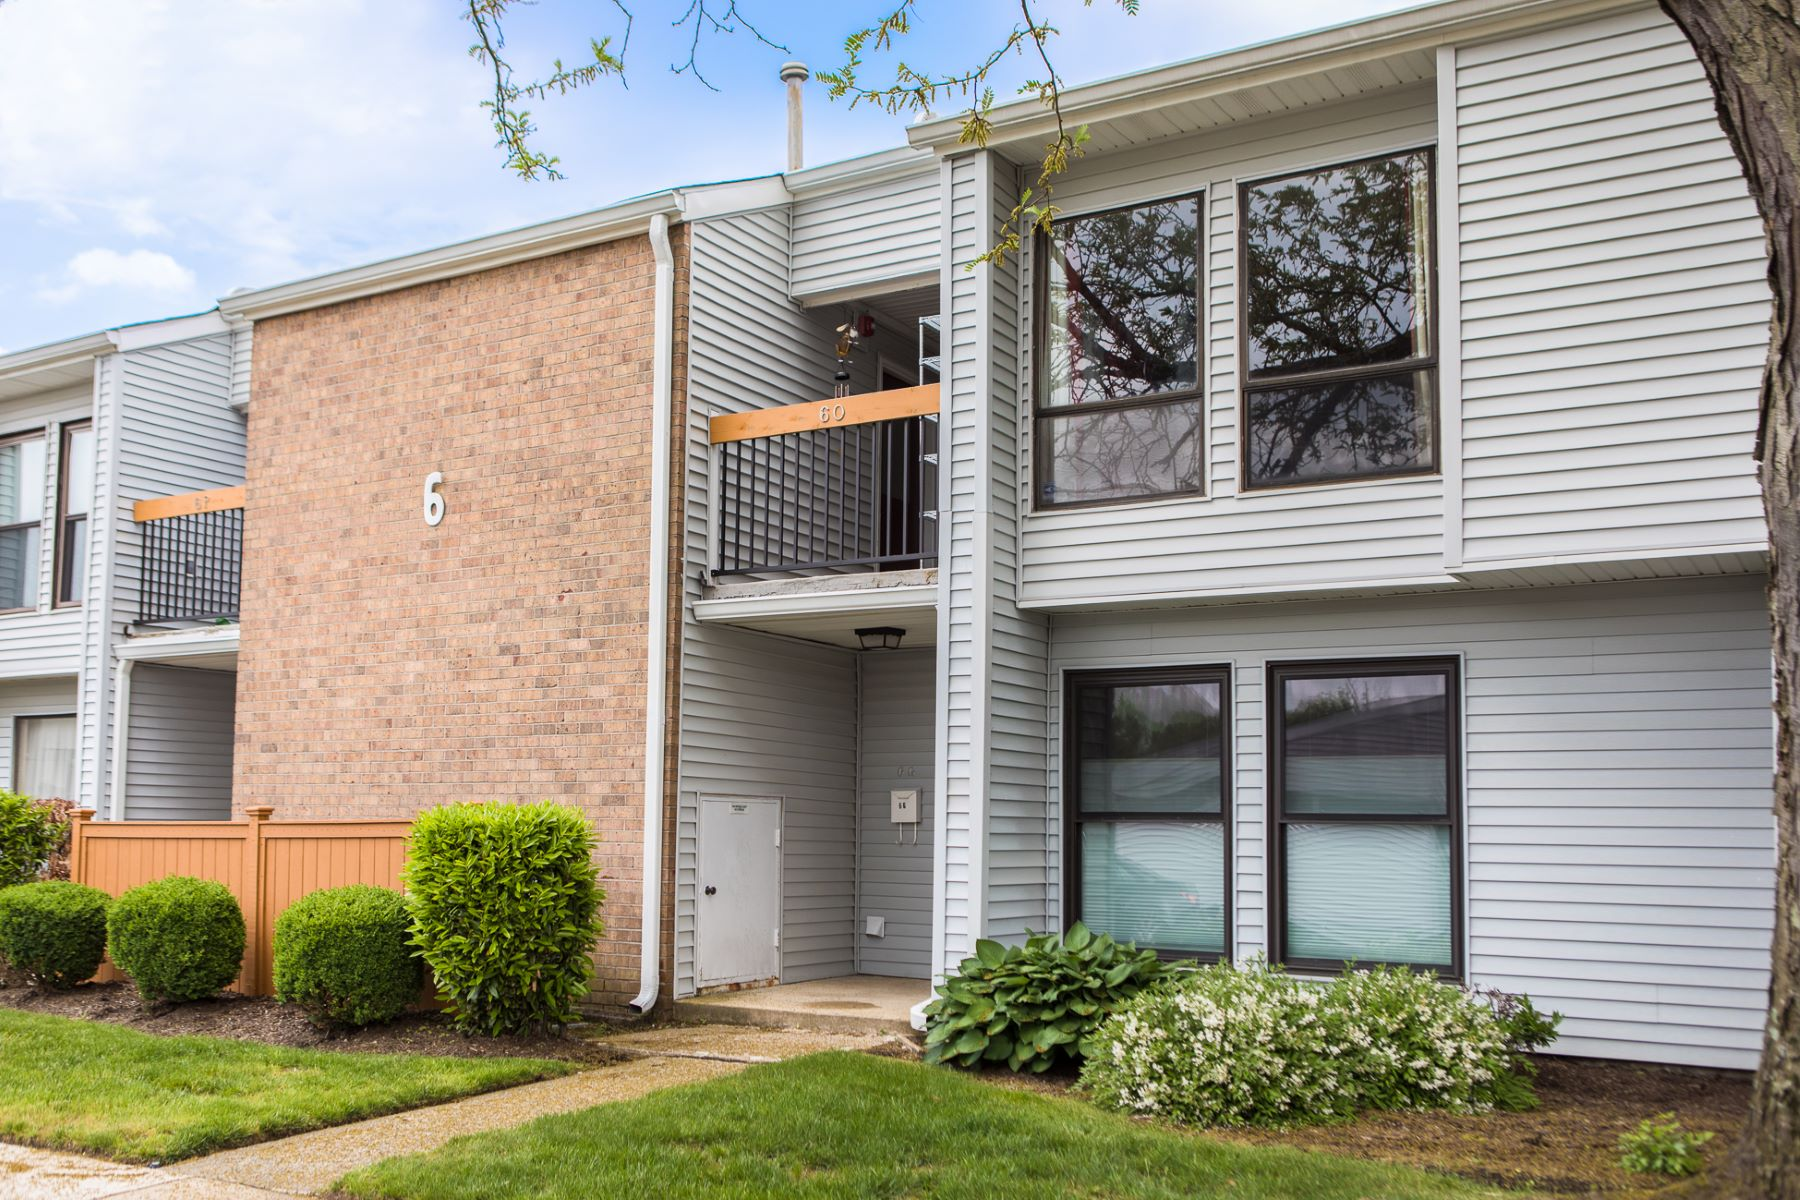 condominiums for Sale at A Sophisticated Renovation for East Windsor Condo 6 Dennison Drive Unit O, East Windsor, New Jersey 08520 United States